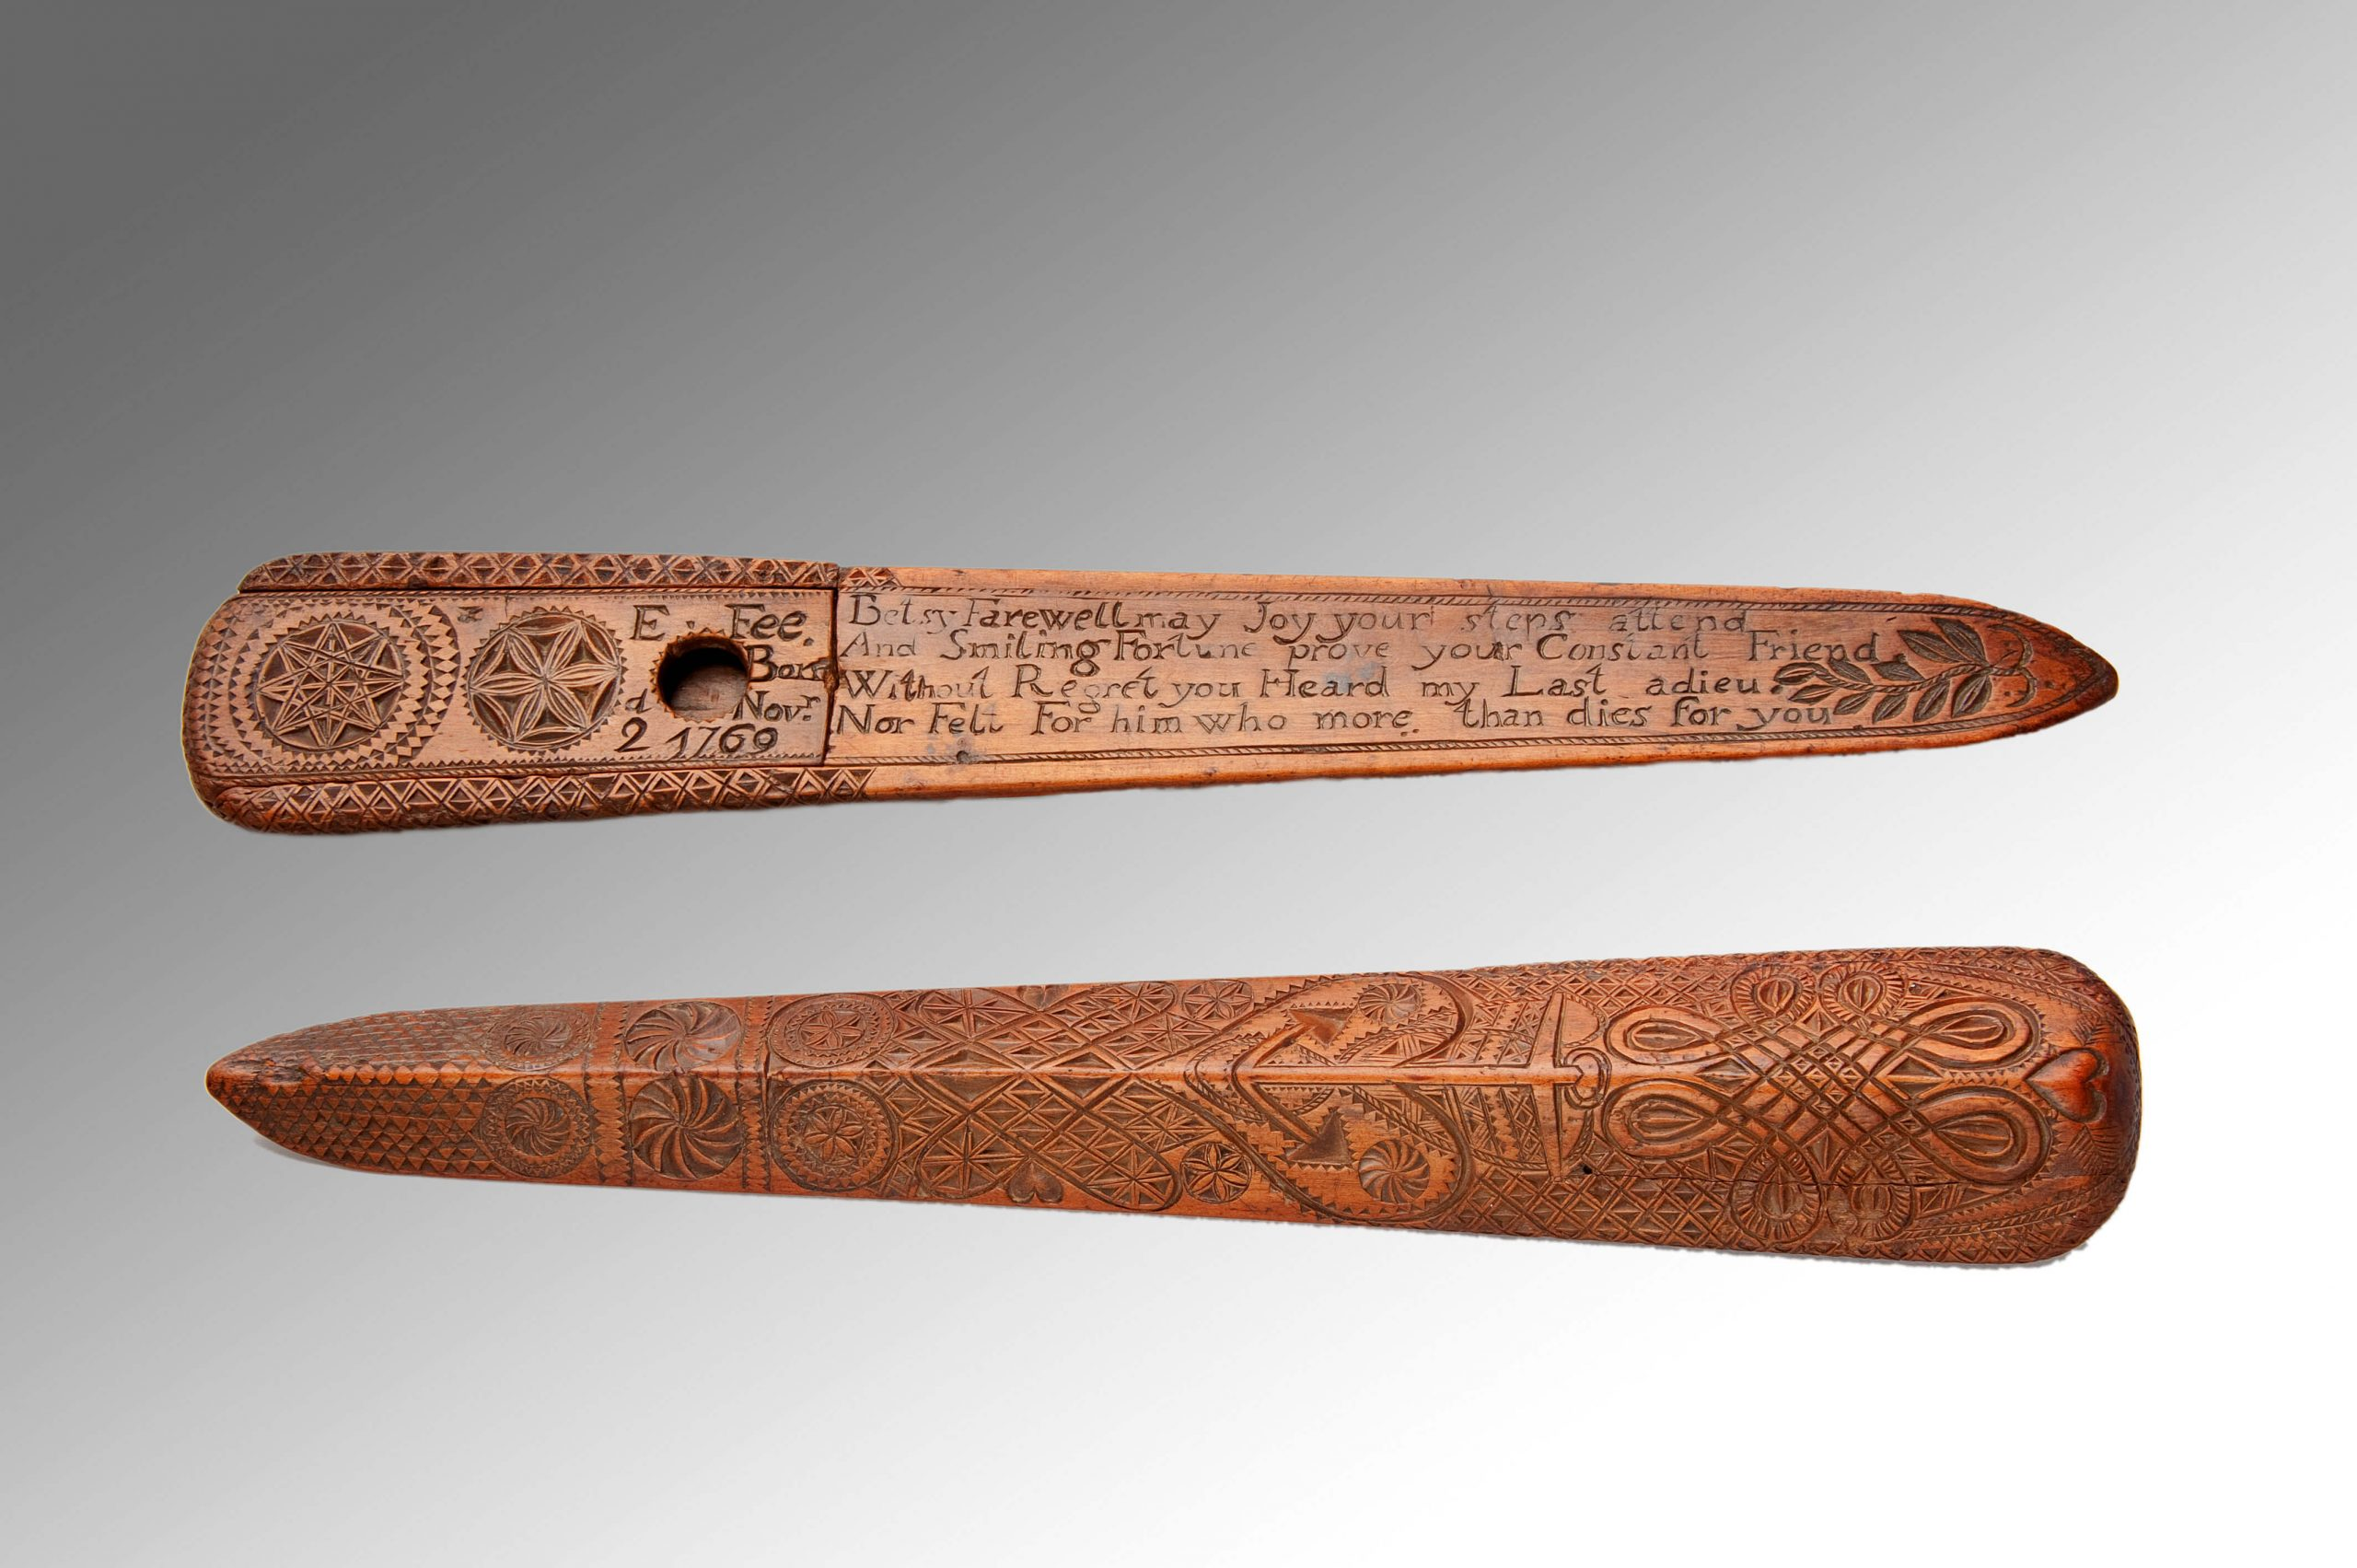 Image of Very Rare Chip-Carved Documentary Stay-busk with sliding compartment. Dated 1769